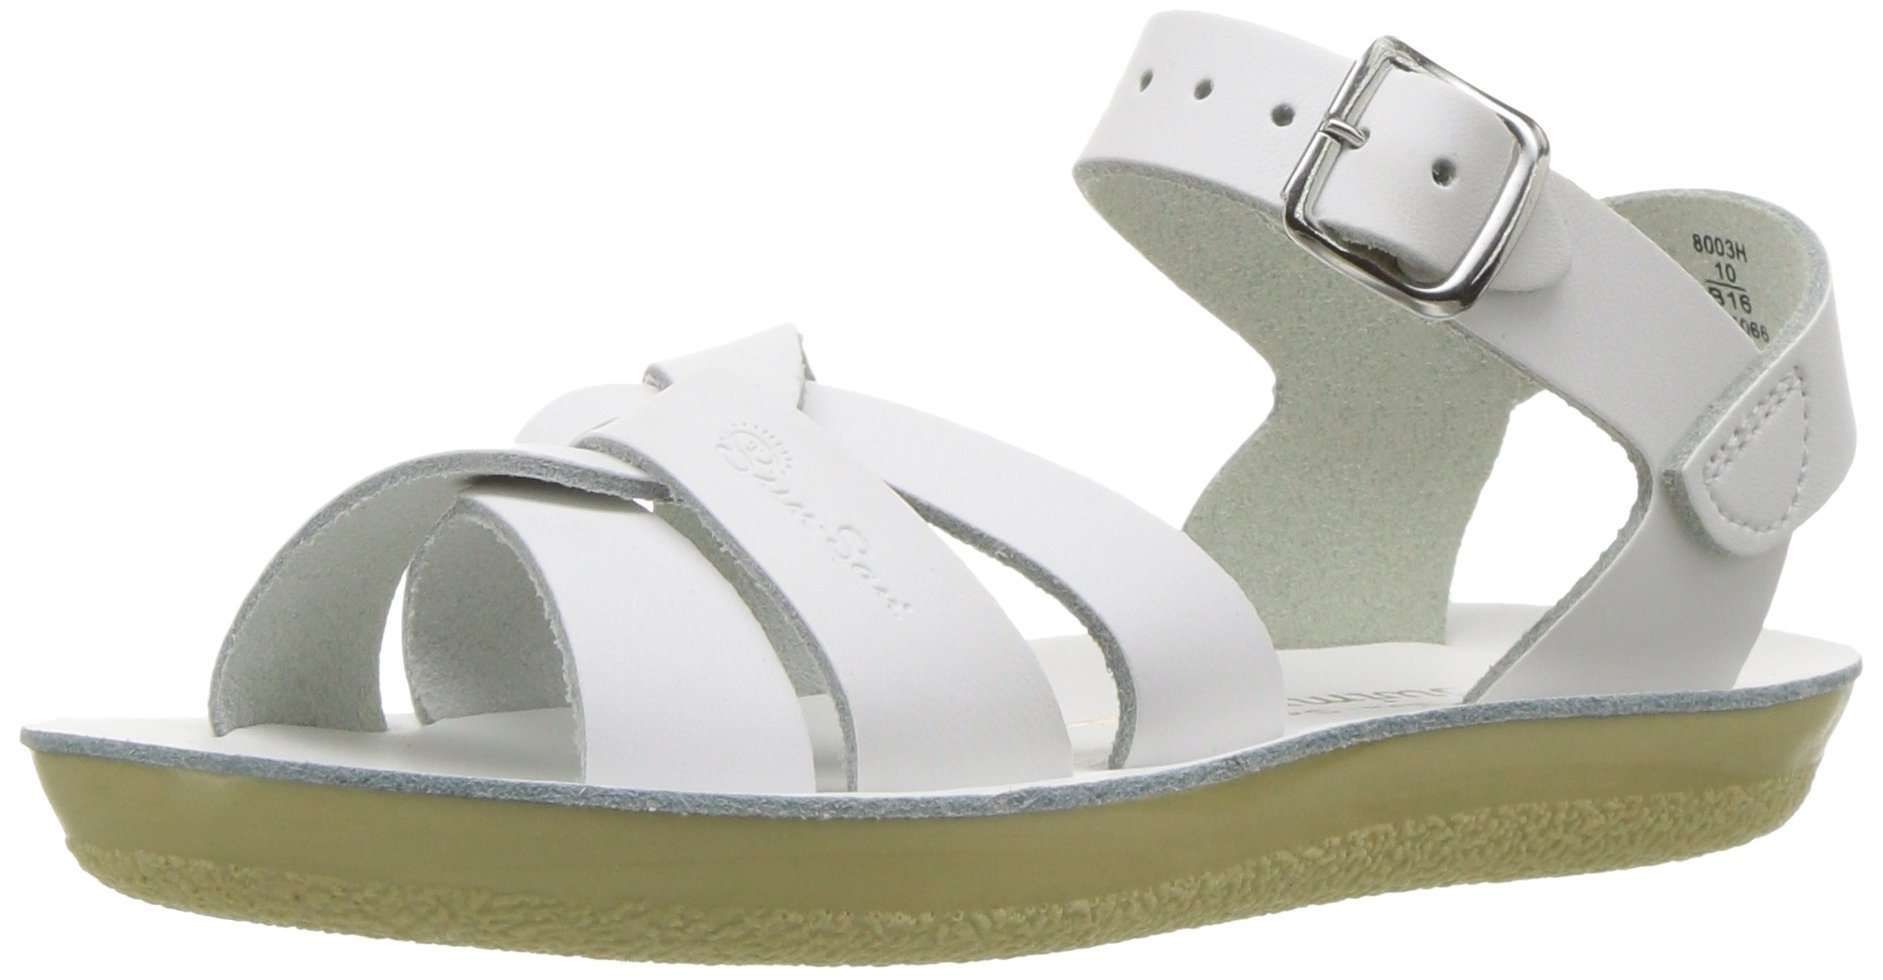 Salt Water Sandals by Hoy Shoe Sun-San Swimmer,White,9 M US Toddler